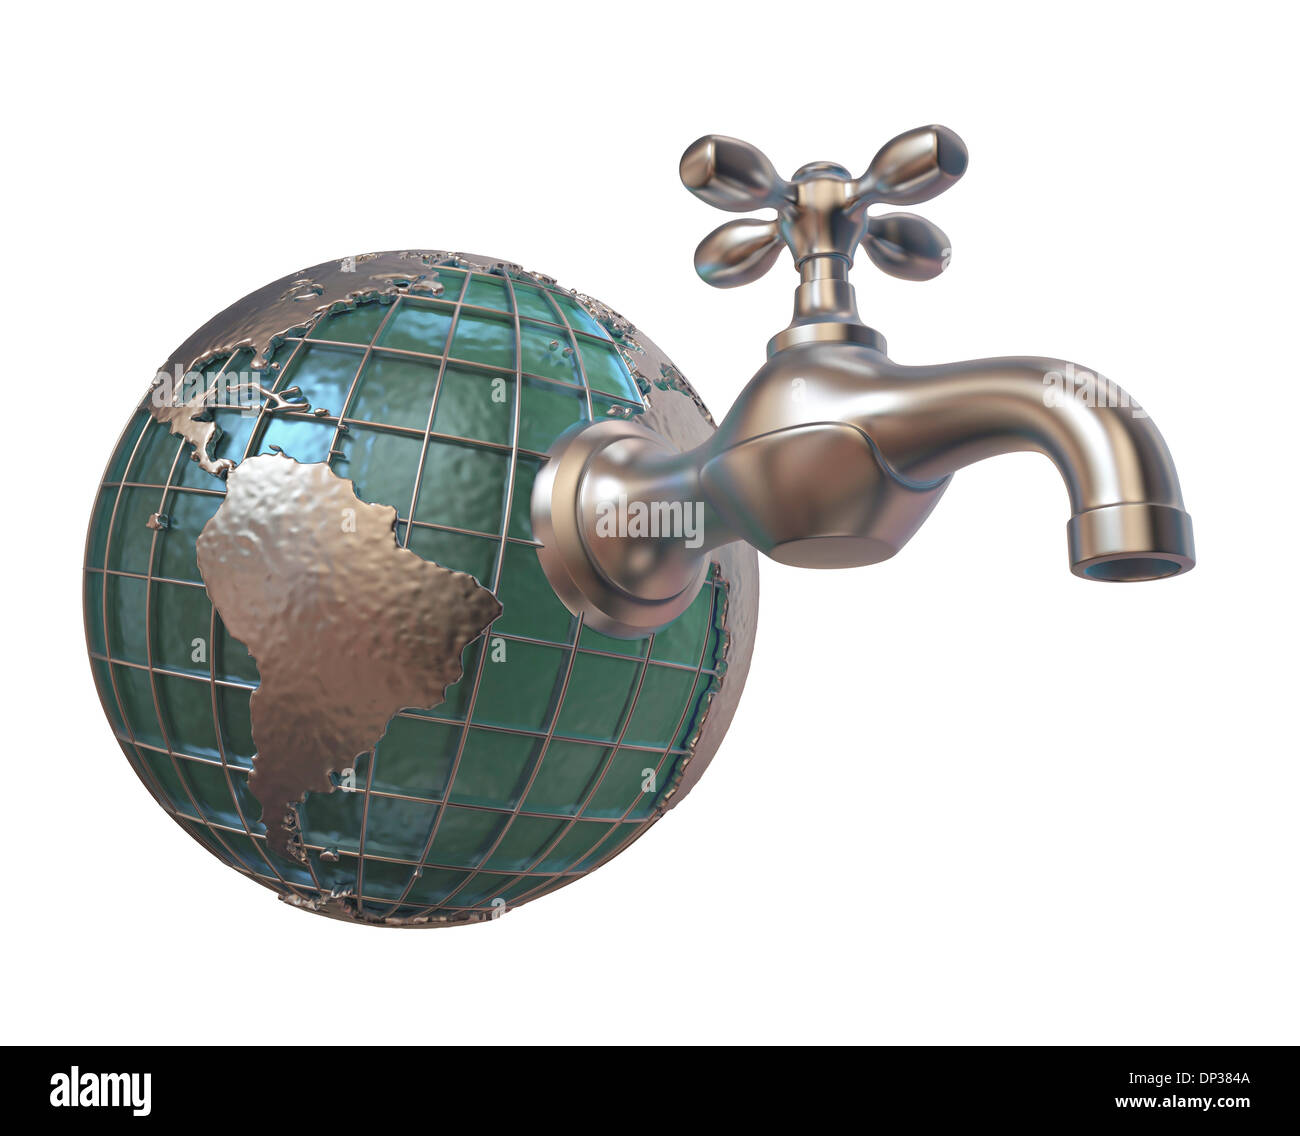 Global water supply, conceptual artwork - Stock Image